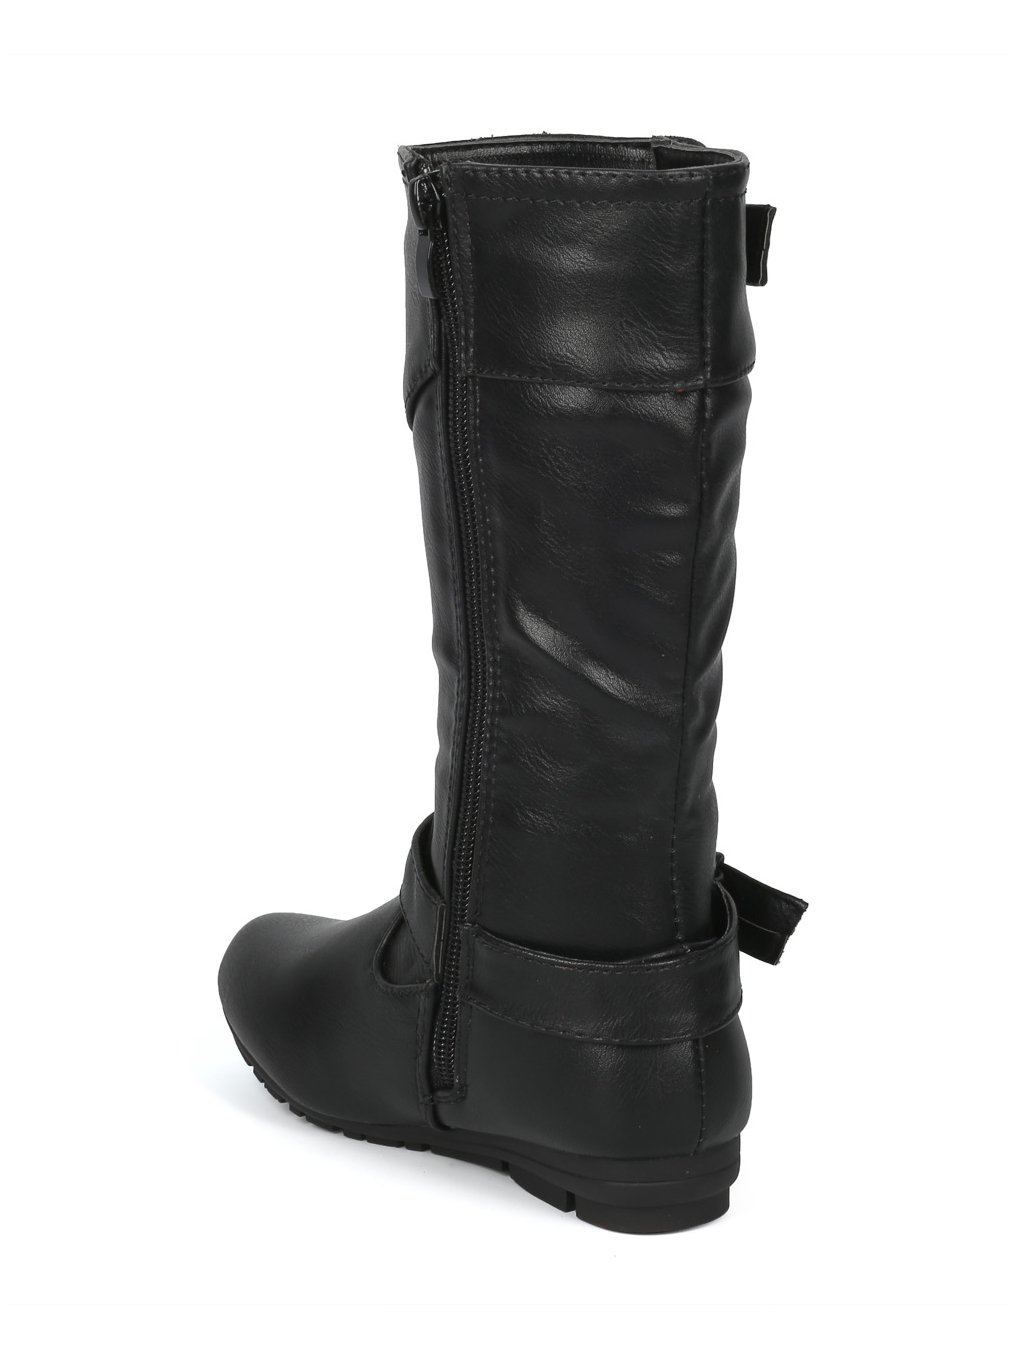 Alrisco Girls Leatherette Buckled Tall Riding Boot HF94 - Black Leatherette (Size: Little Kid 11) by Alrisco (Image #3)